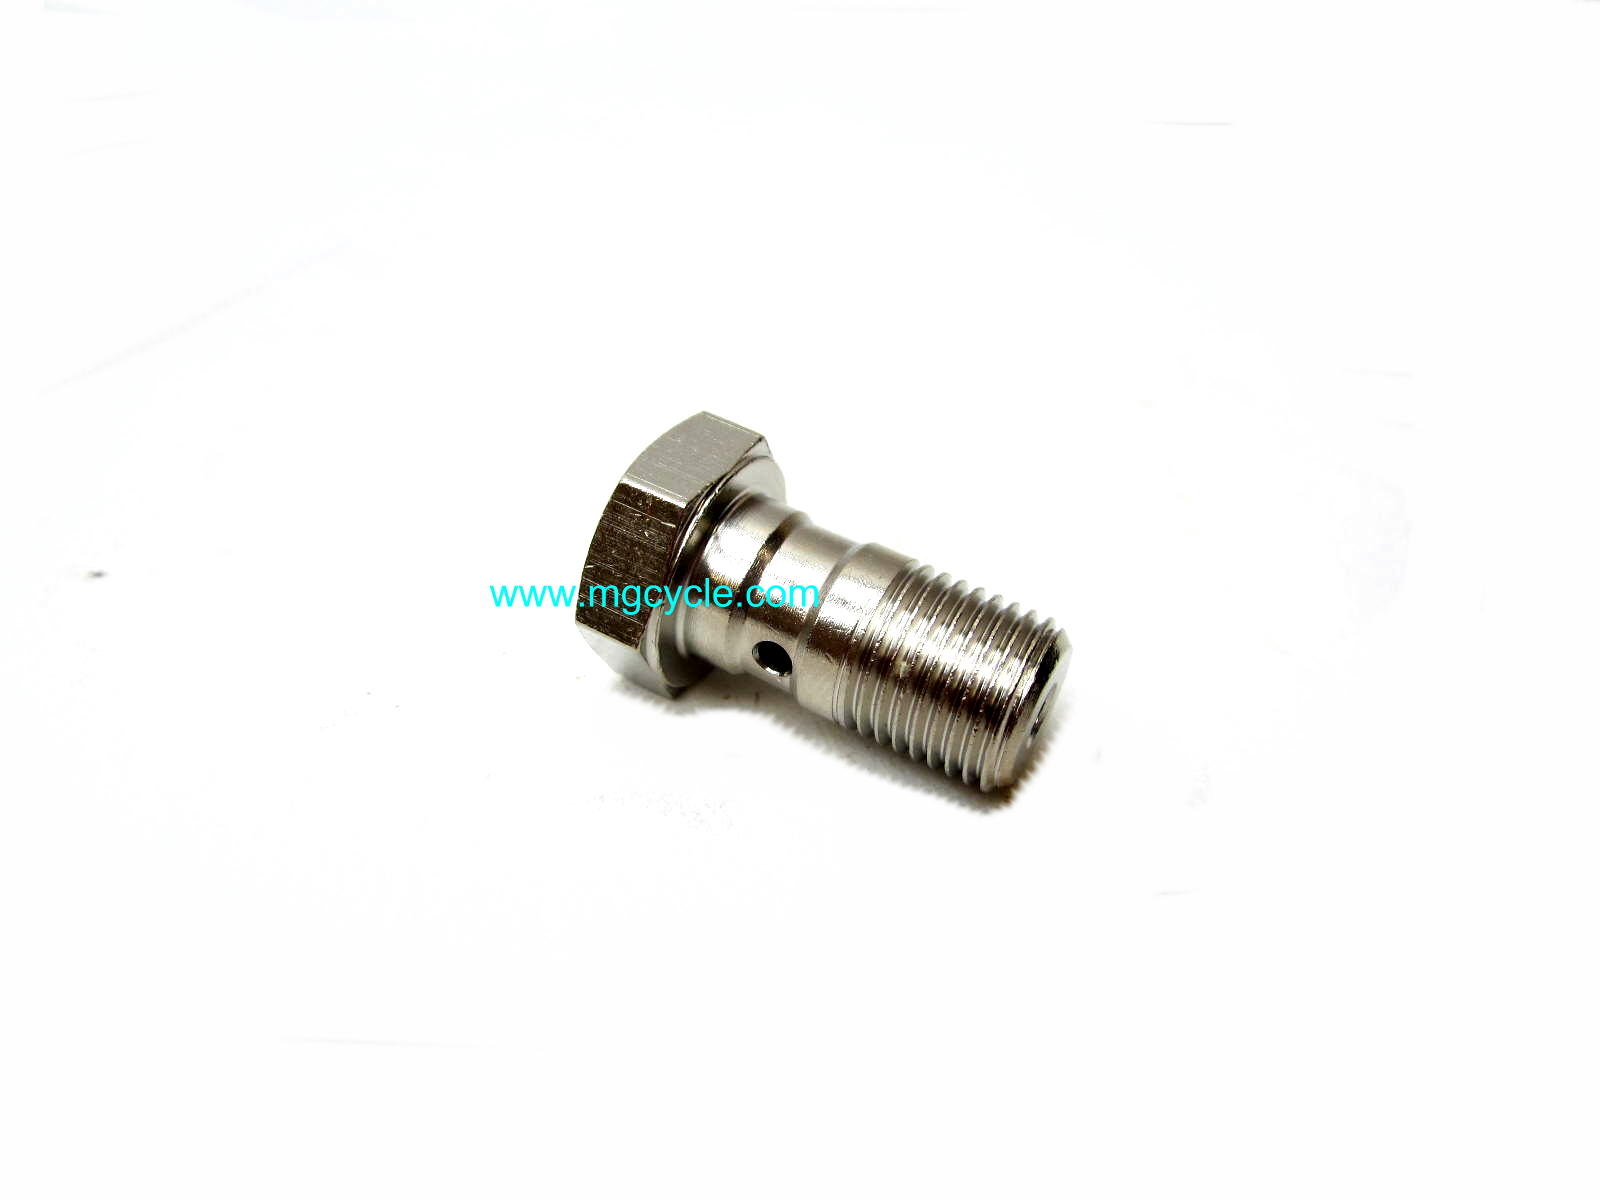 Brembo bright plated banjo bolt 10mm x 1.0 thread